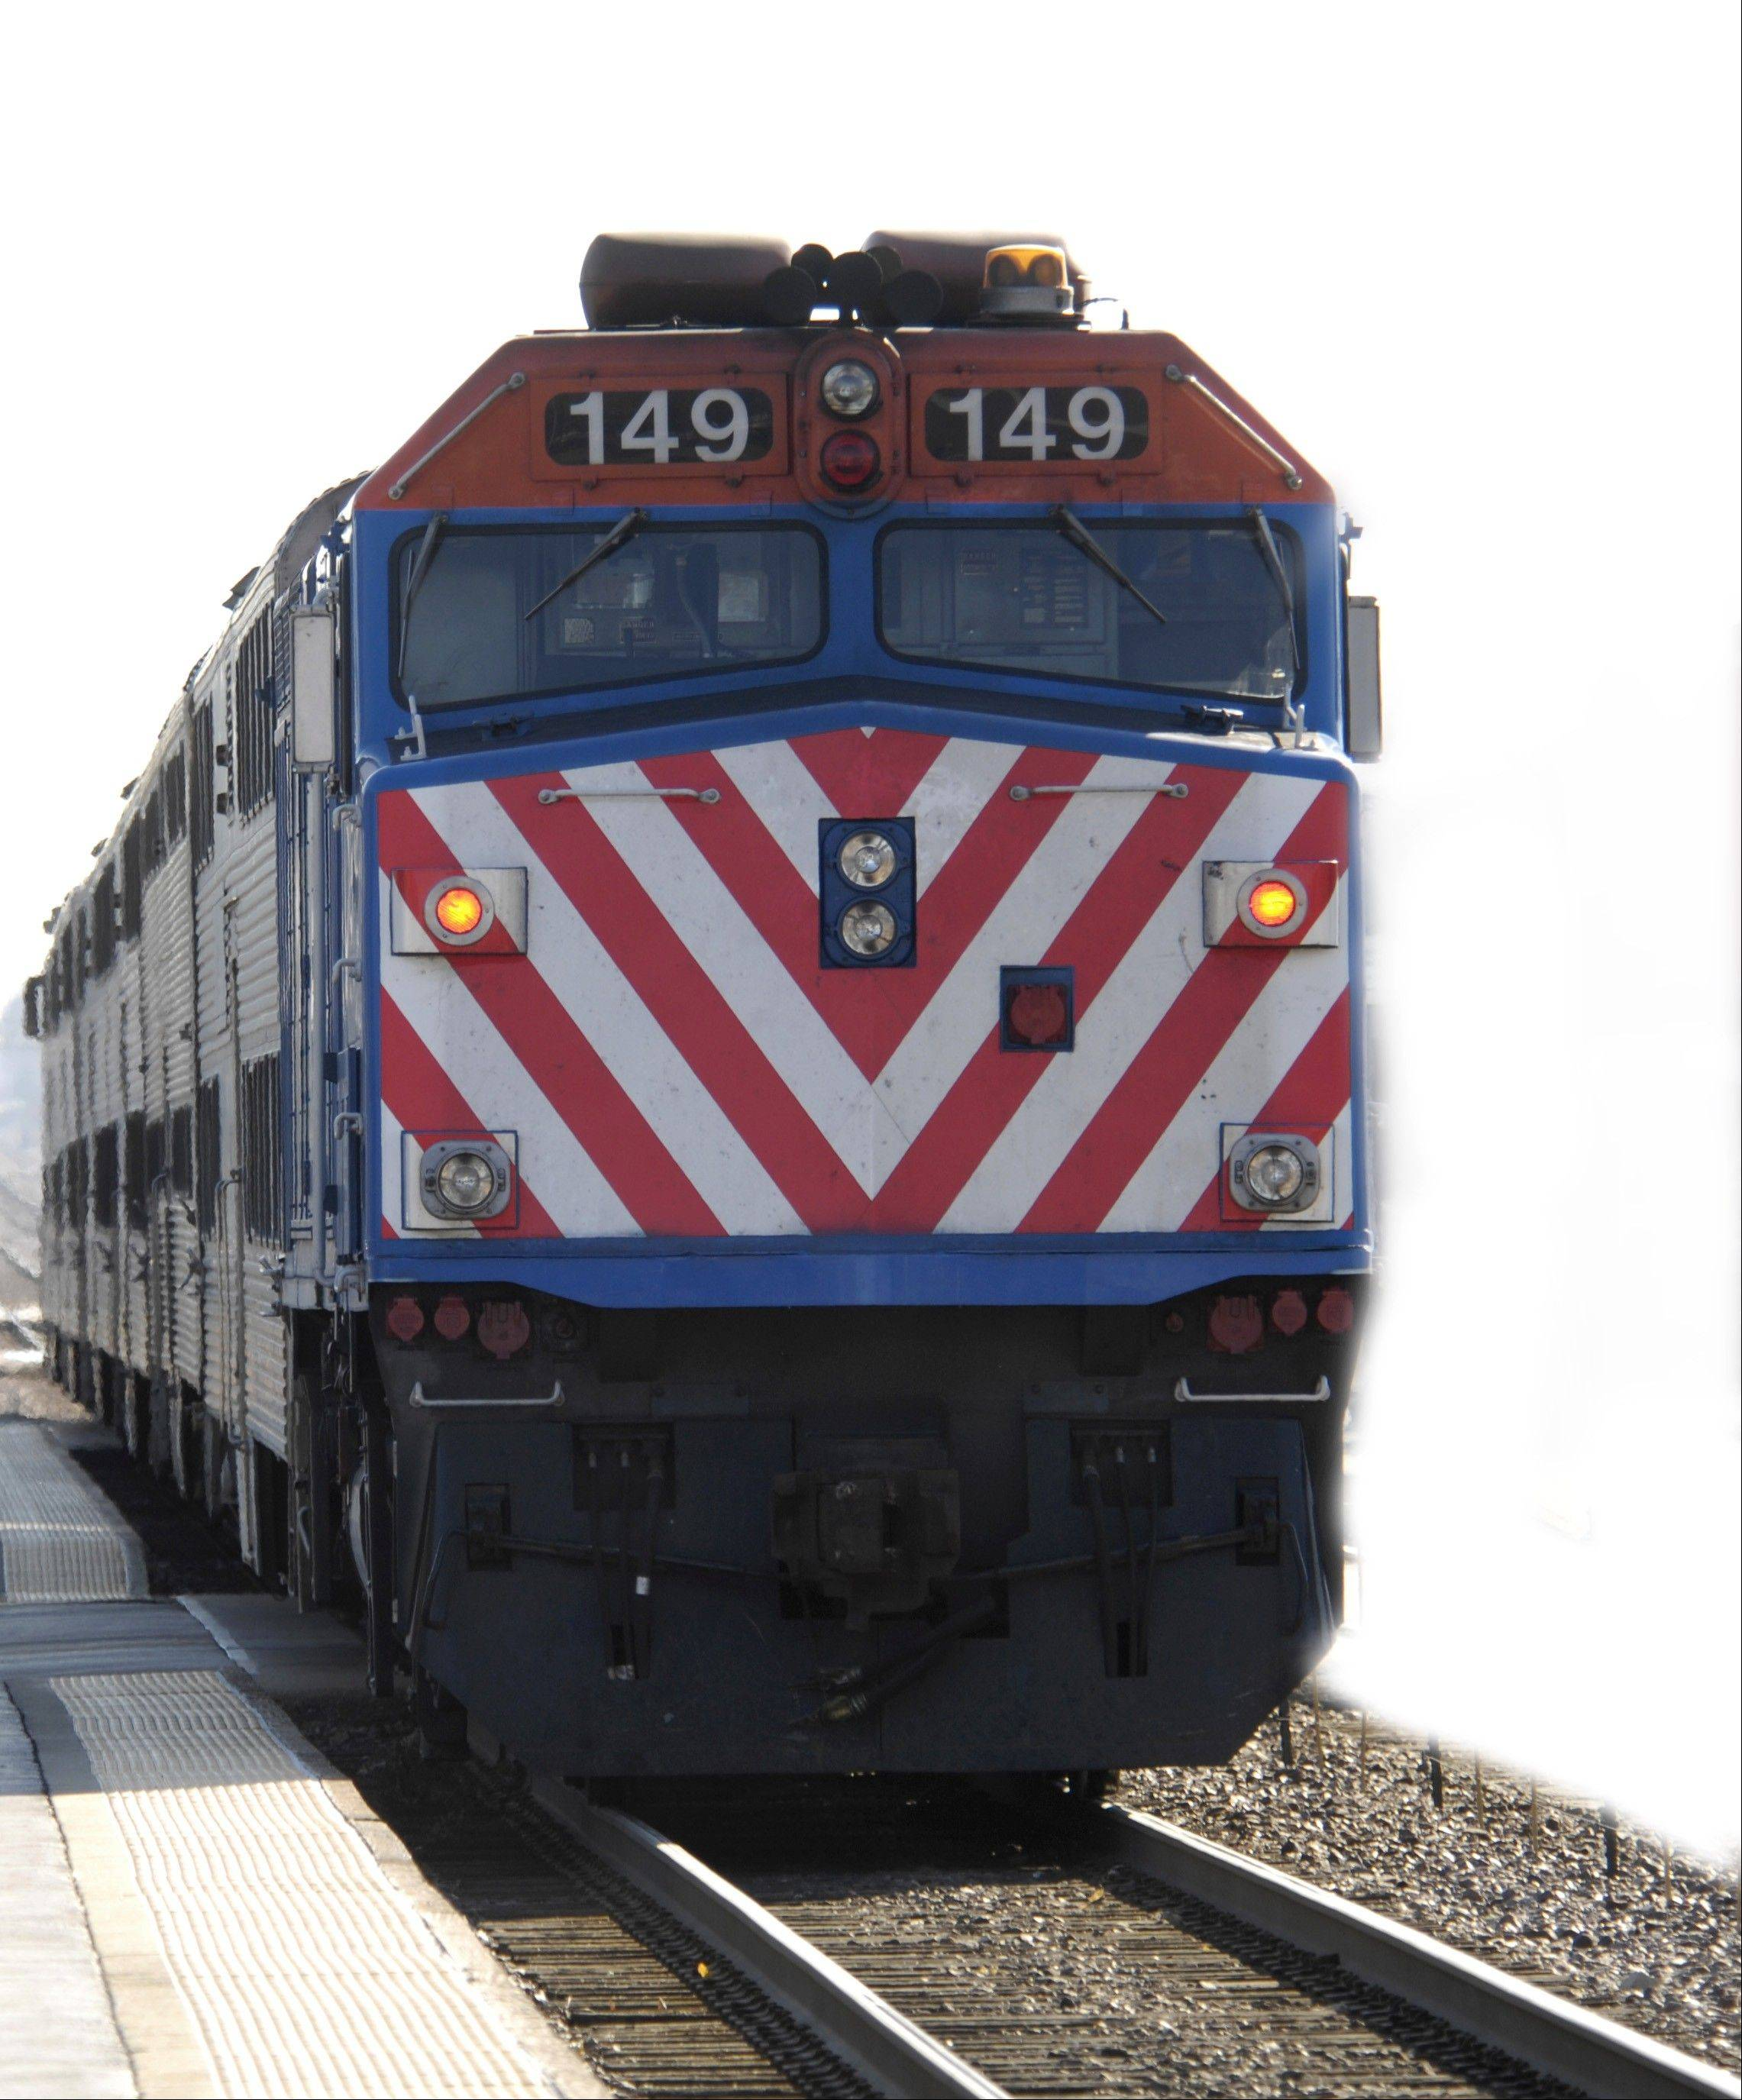 Nearly a year after steep fare hikes took effect and a few weeks before additional ones are imposed, Metra leaders approved giving 299 employees raises of up to 33 percent.